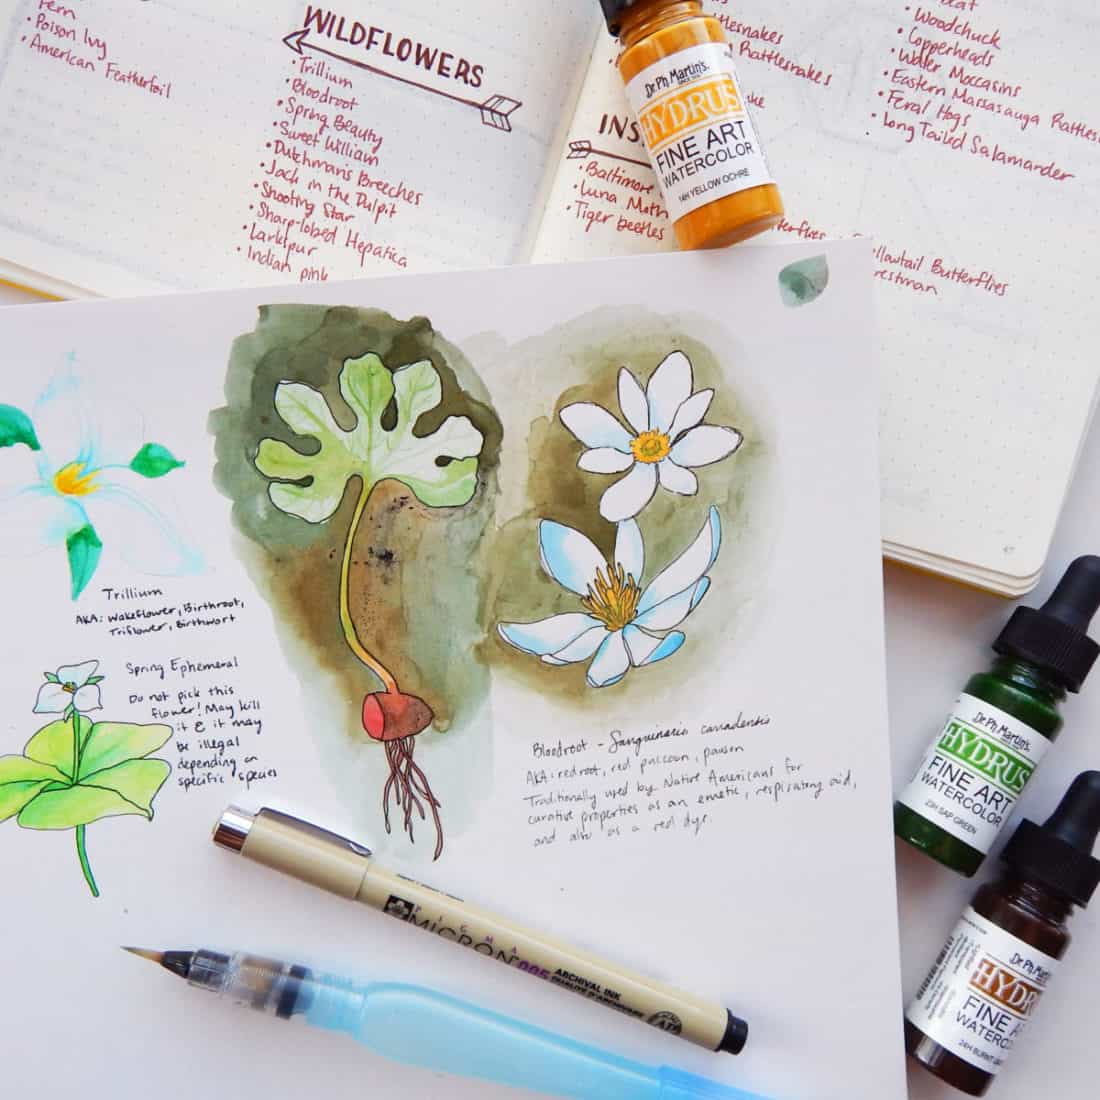 Several watercolor sketches of plants in a journal.